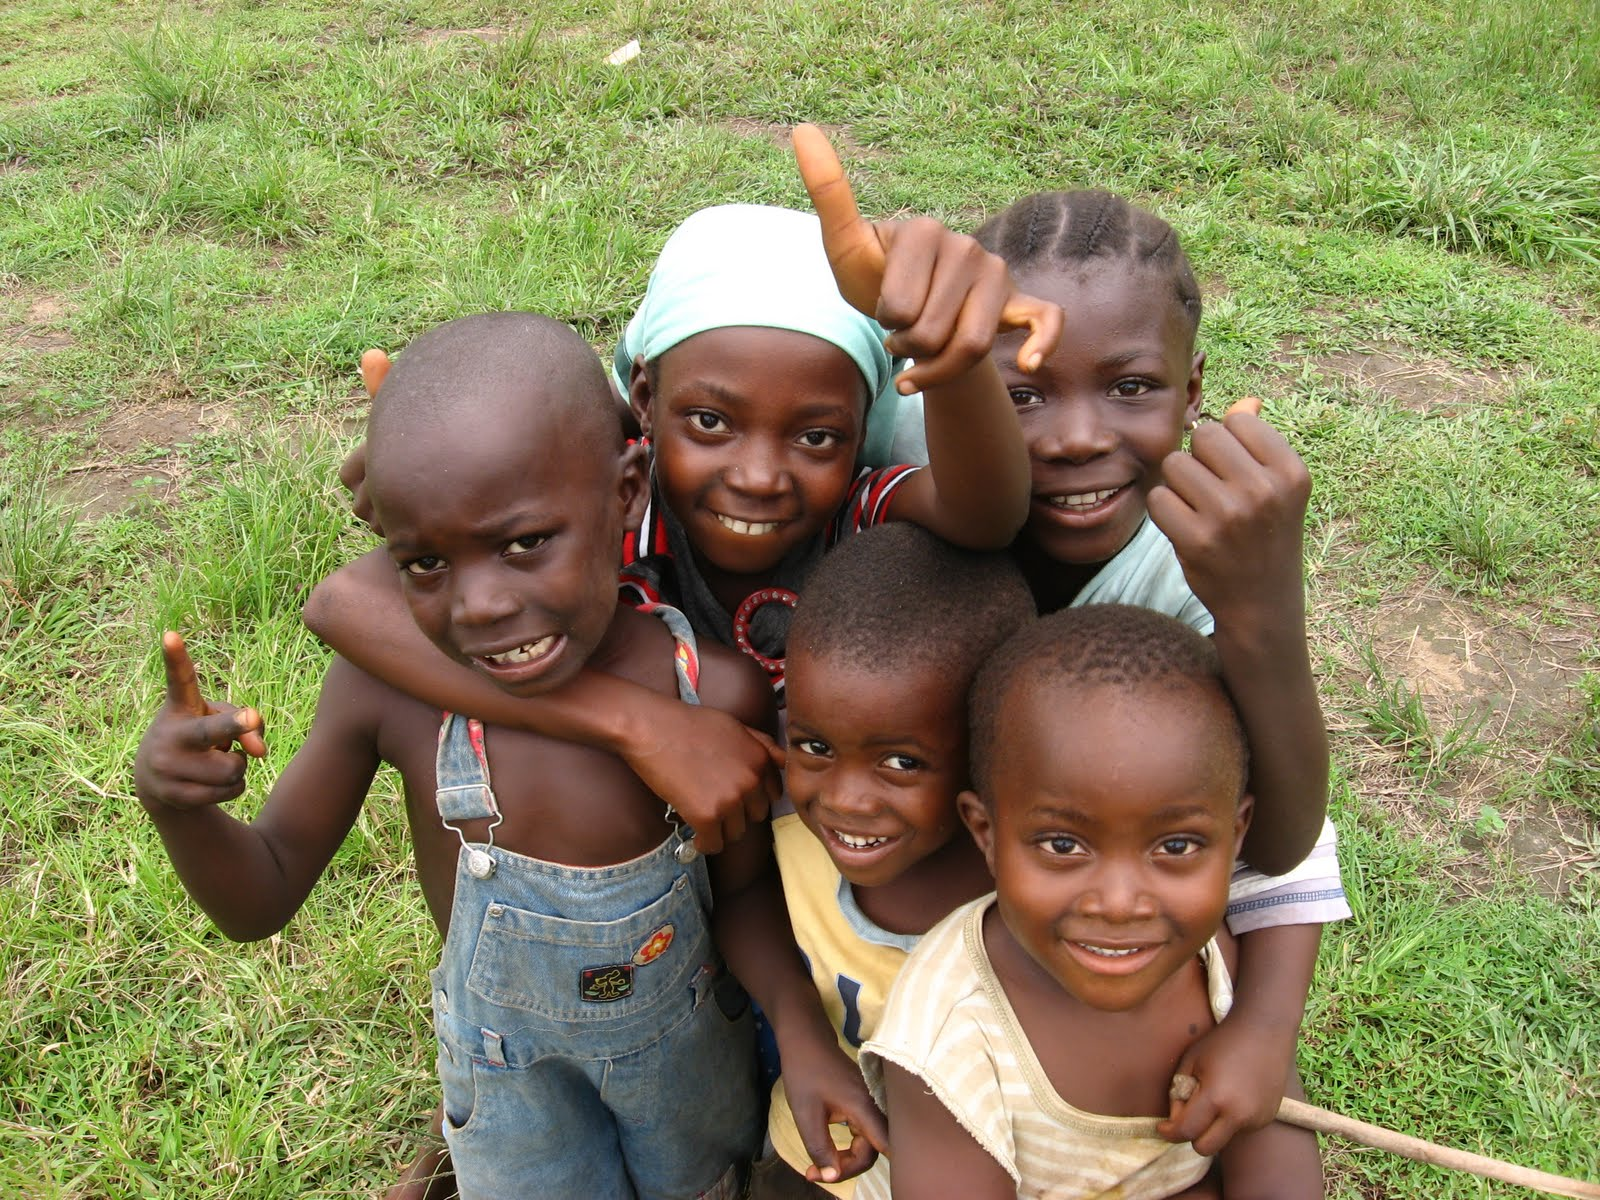 [Photo of Sierra Leone children]